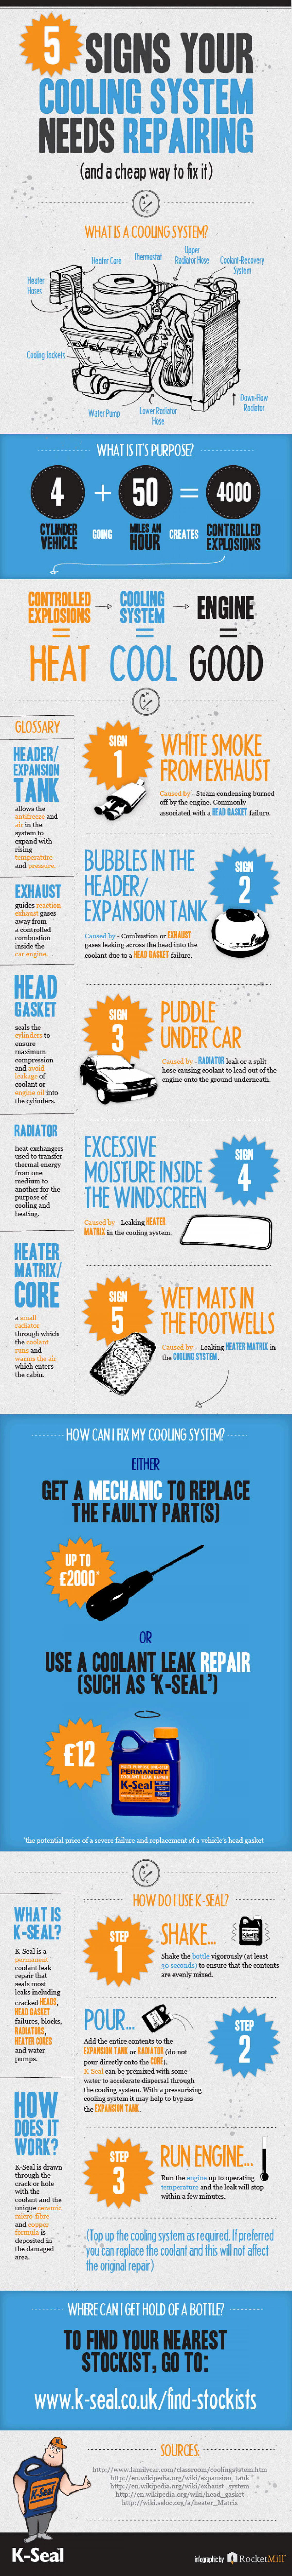 5 Signs Your Cooling System Needs Repairing Infographic